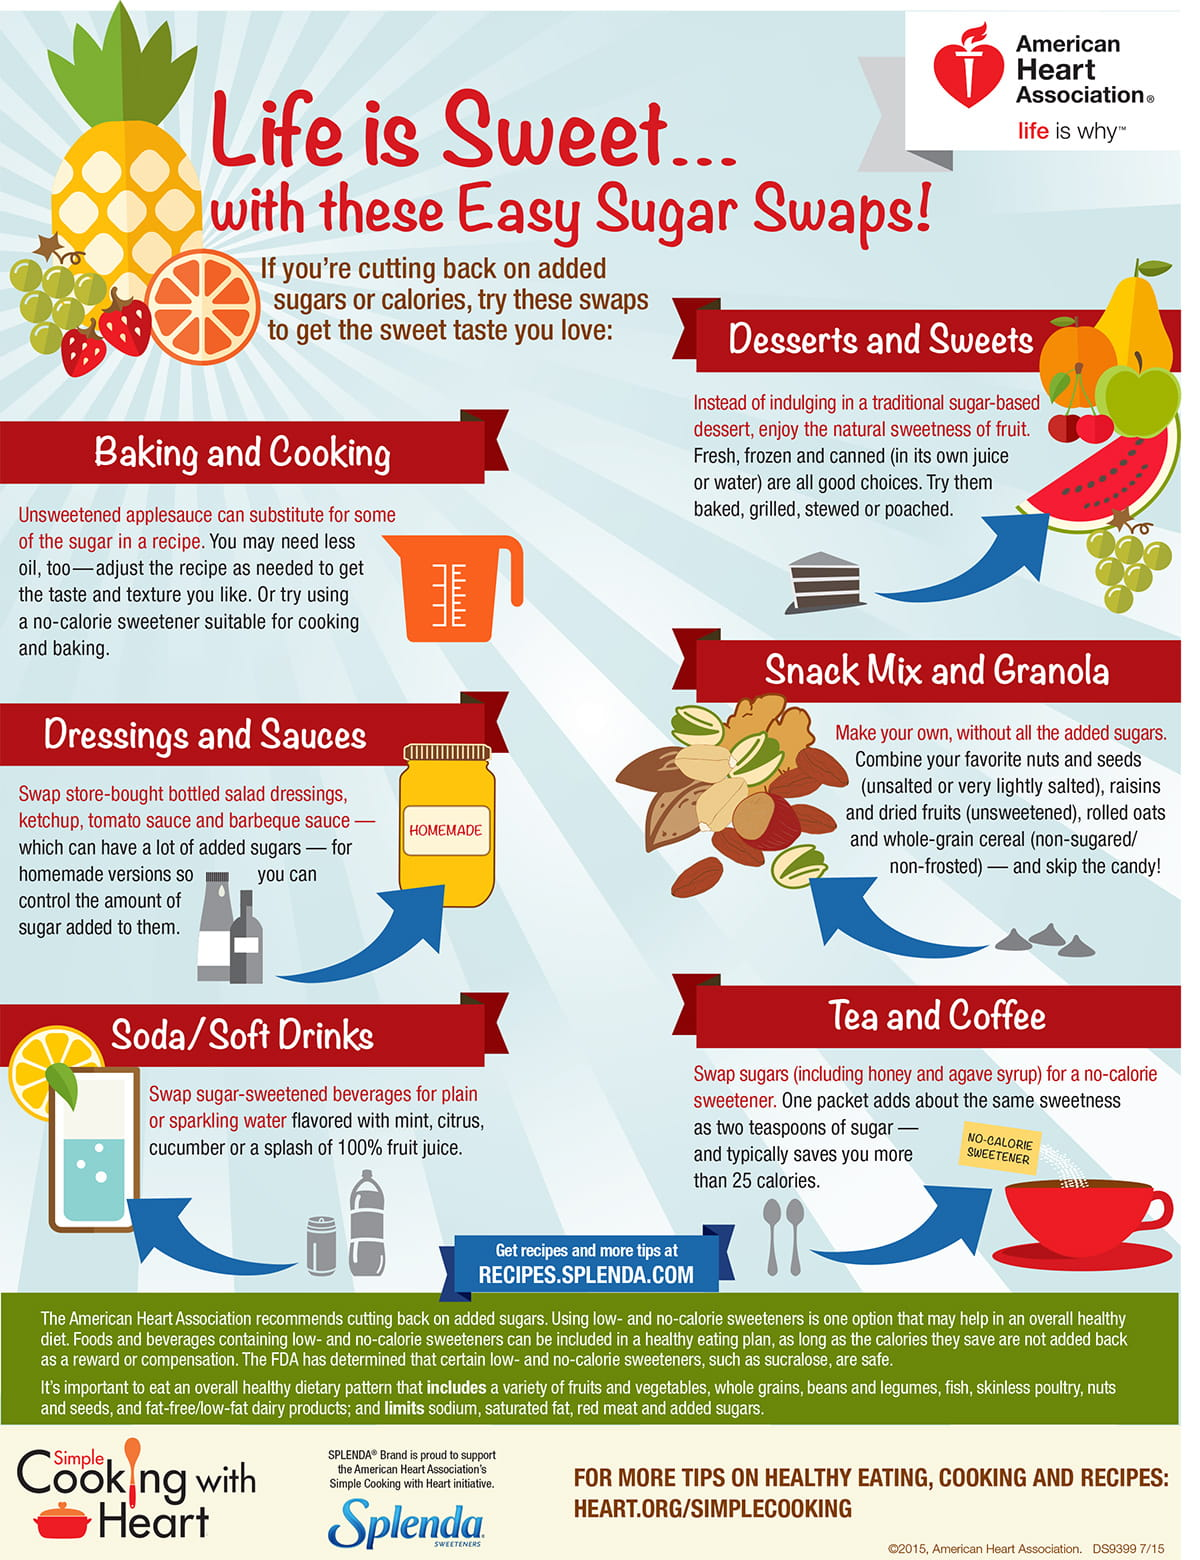 Life is Sweet with these easy sugar swaps